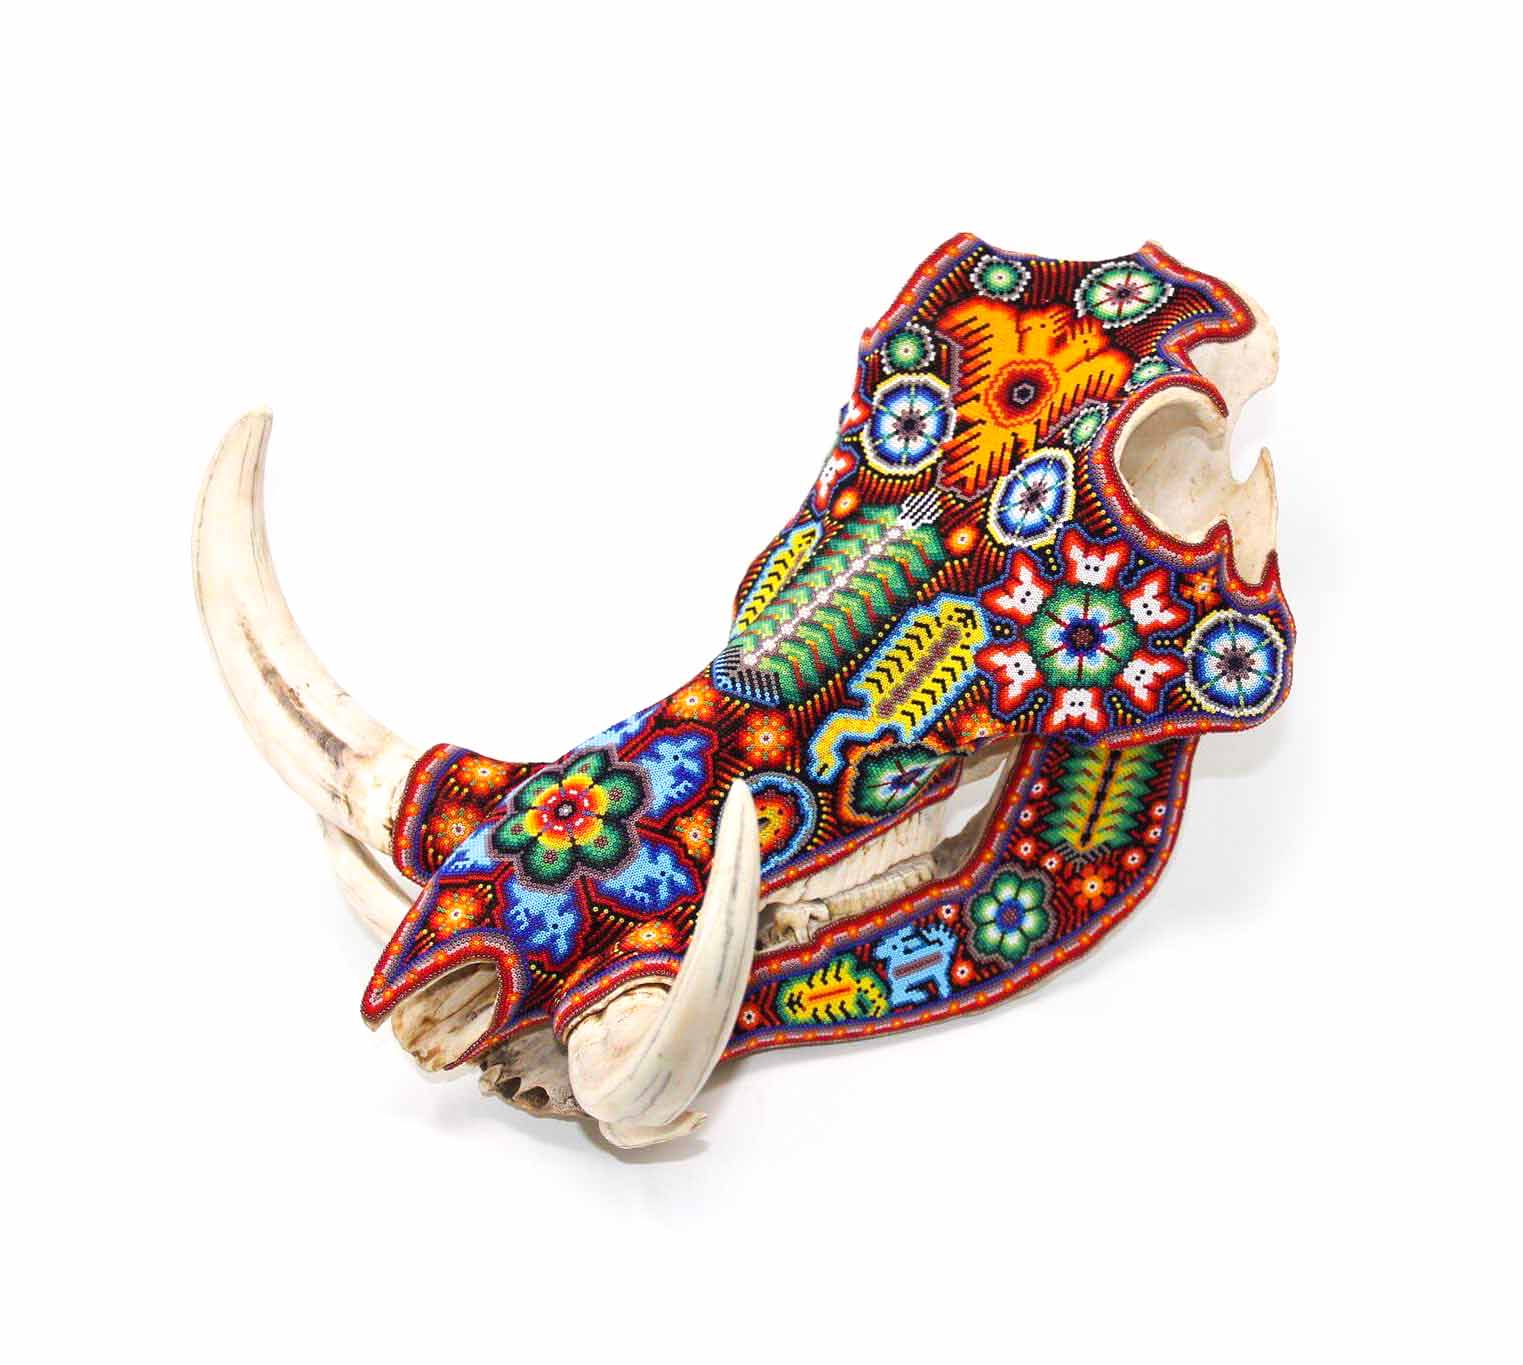 African boar skull in glass beads and Huichol art of traditional painting